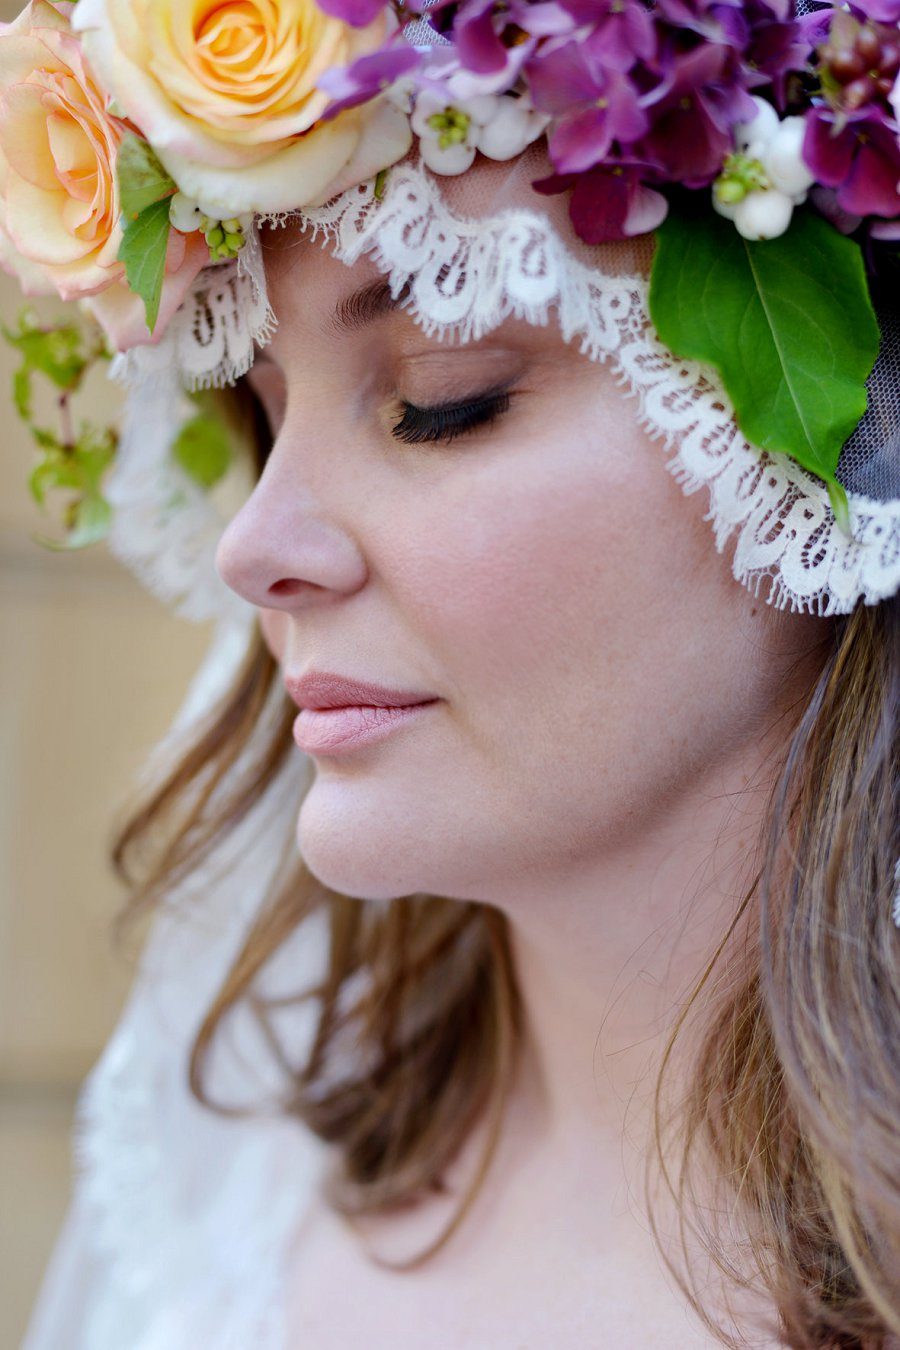 Are You A Plus Size Or Curvalicious Bride To Be Are You Worried About Wedding Dress Shopping What Have Been Your Experience So Far